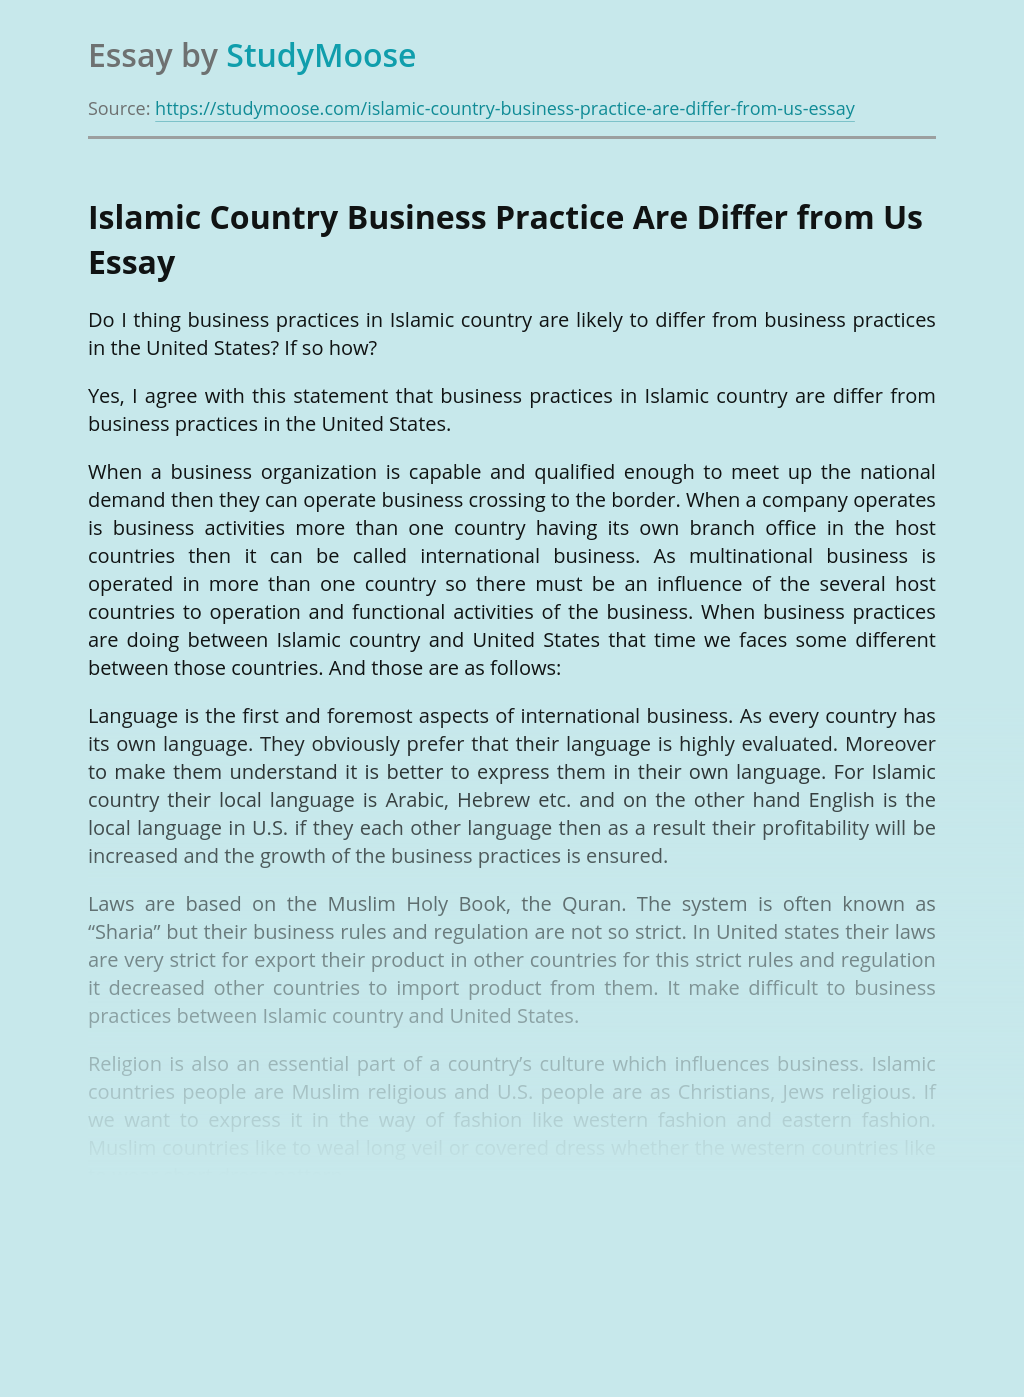 Islamic Country Business Practice Are Differ from Us